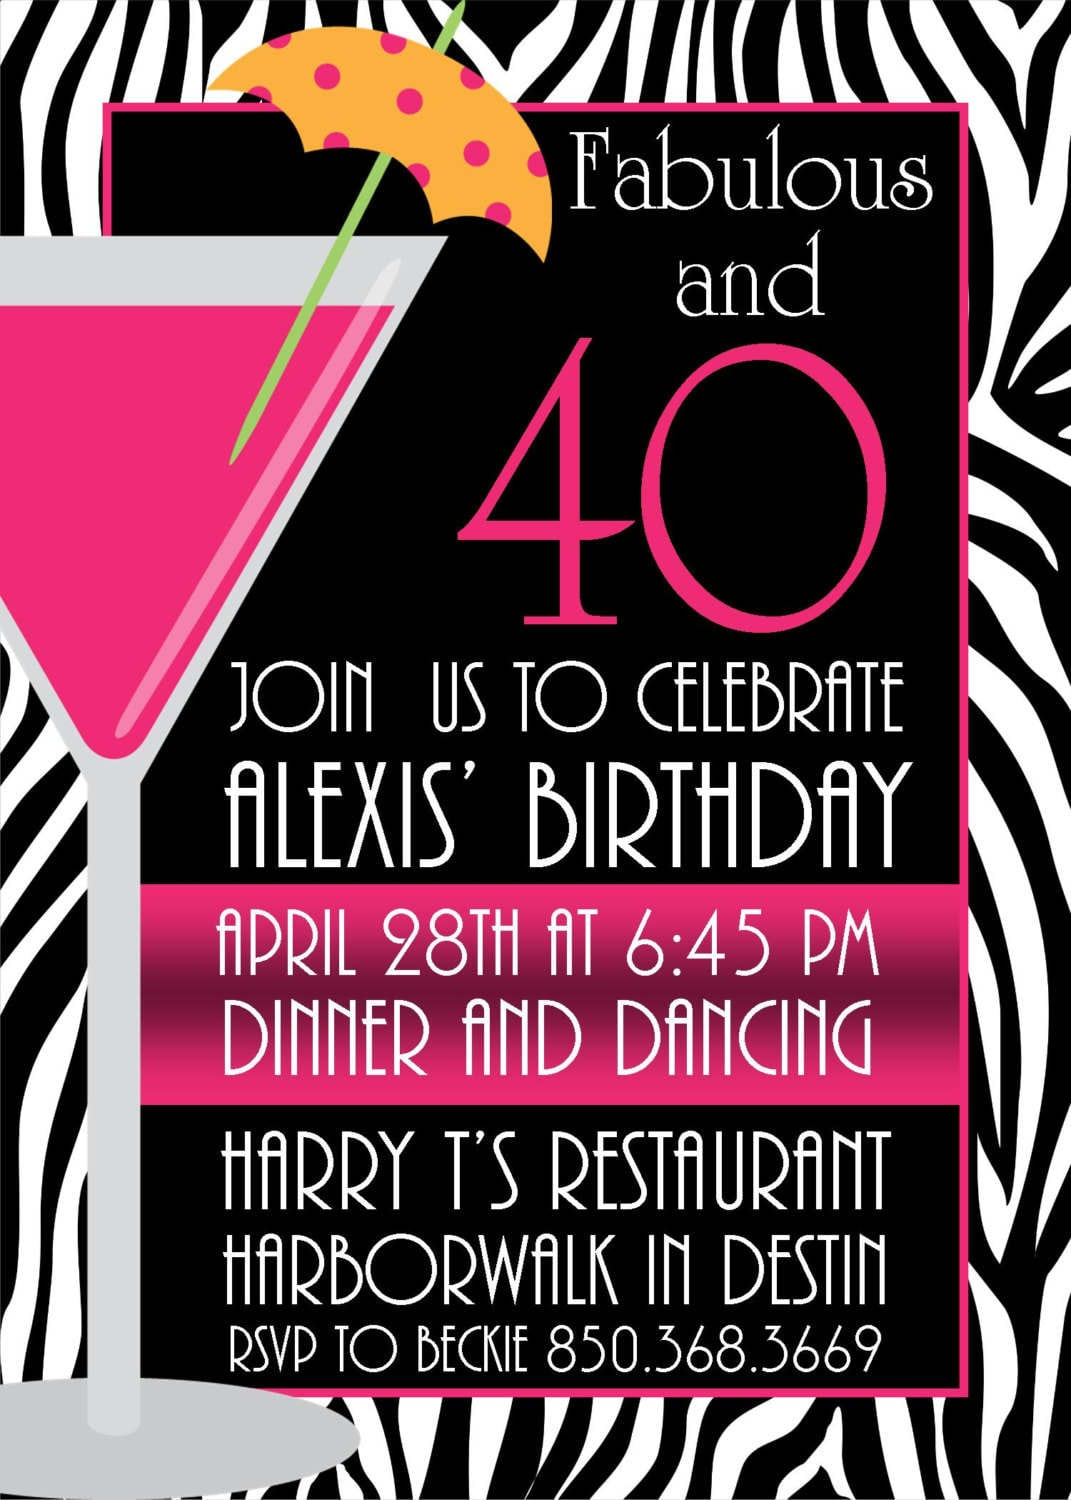 Pictures Of Stylish Women For 40th Birthday Invitation